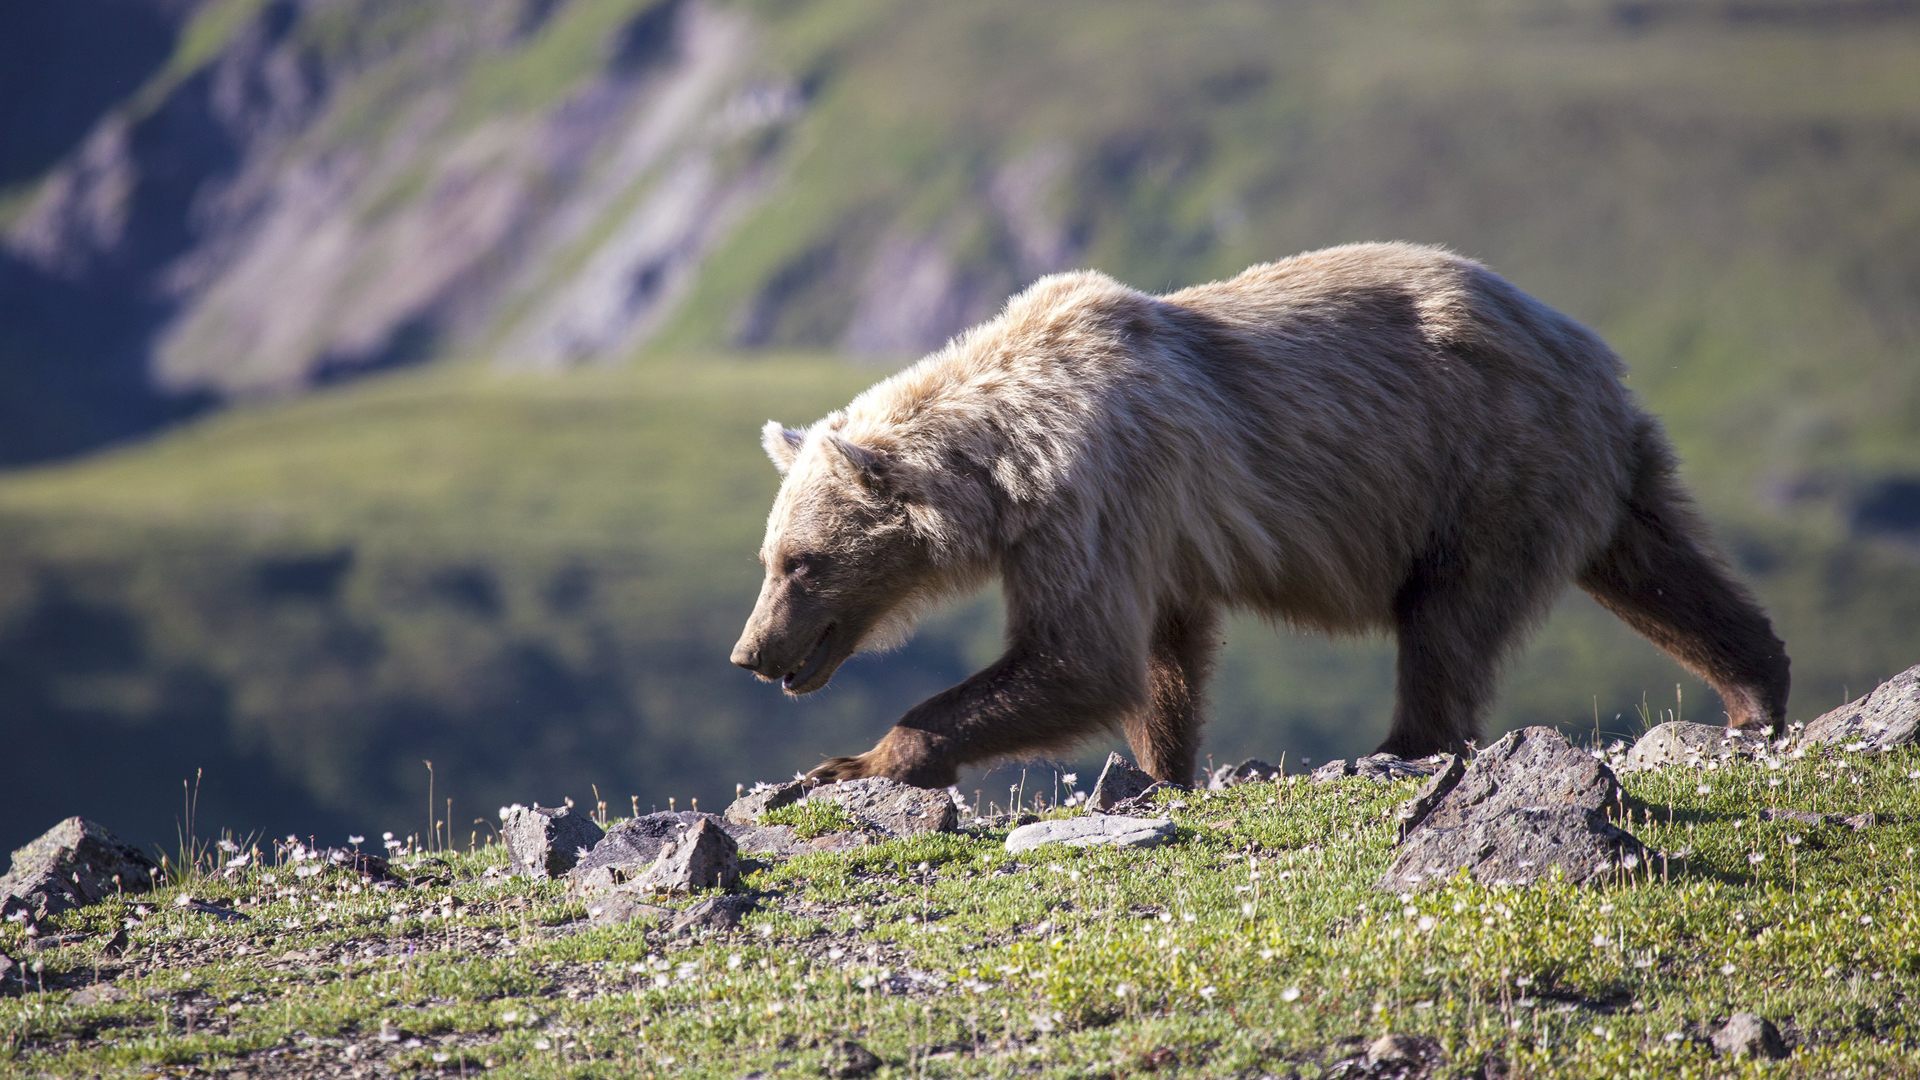 A bear is seen in a file photo from the National Park Service.